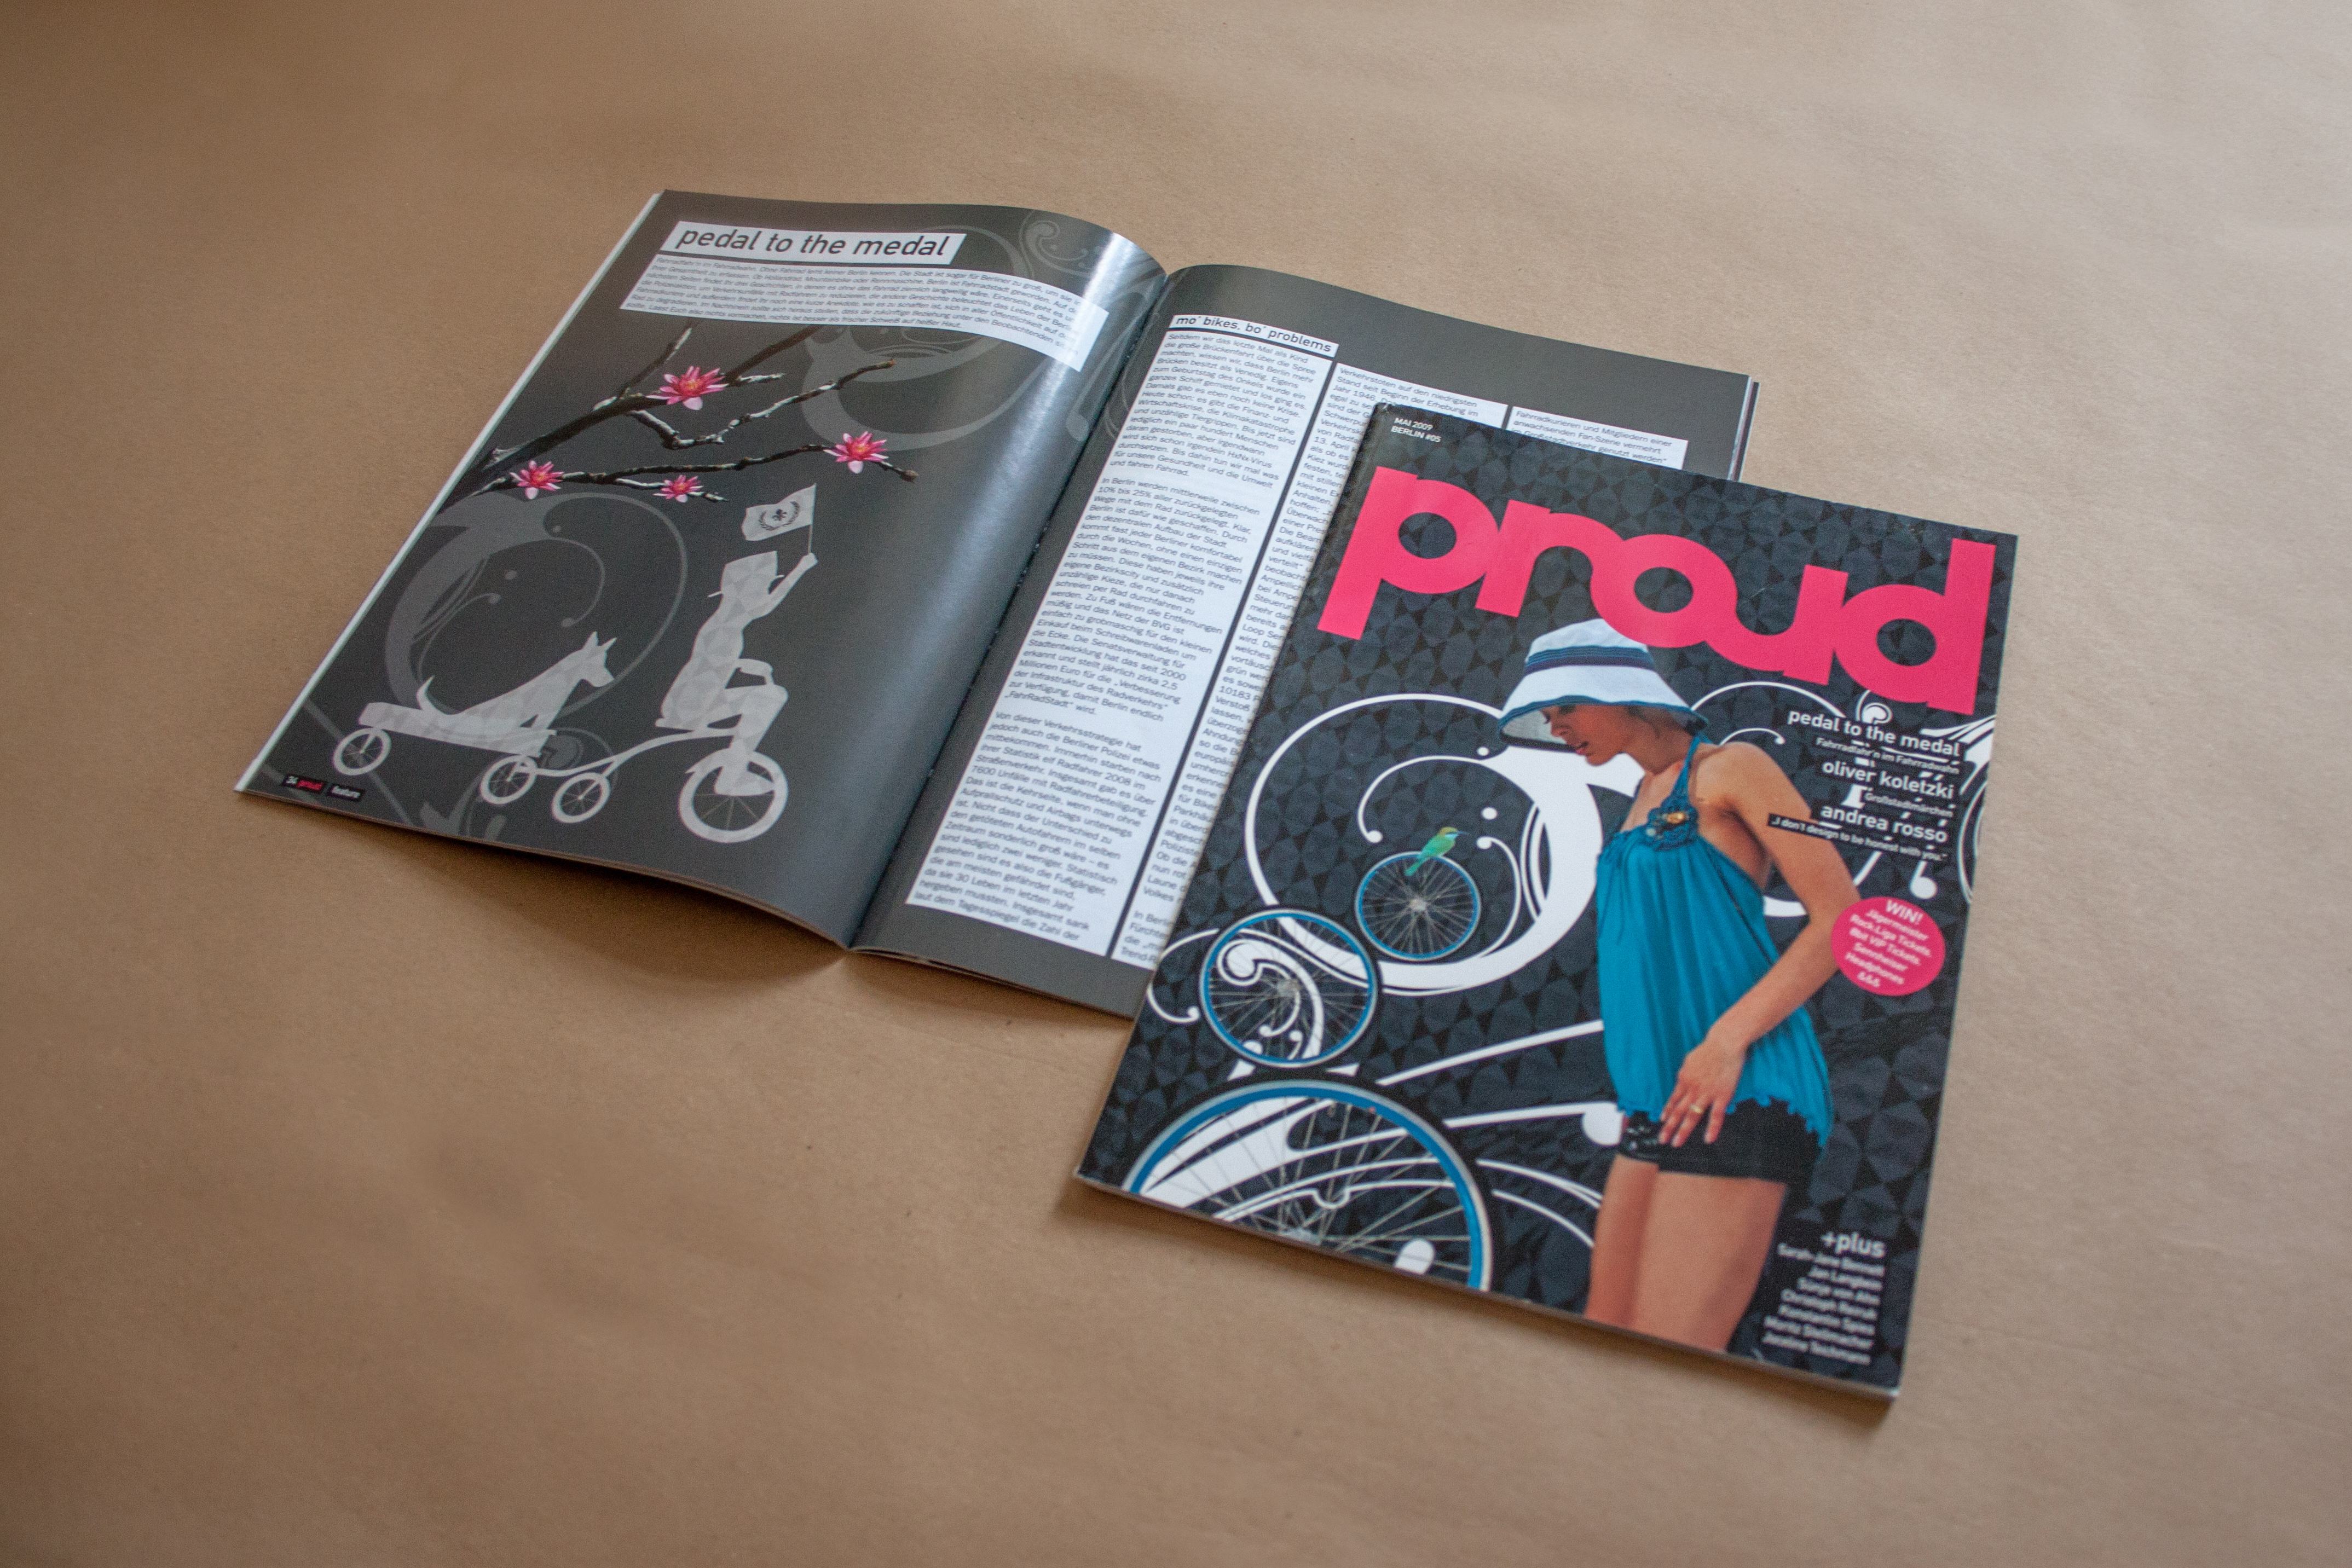 Proud magazine cover and inside pages